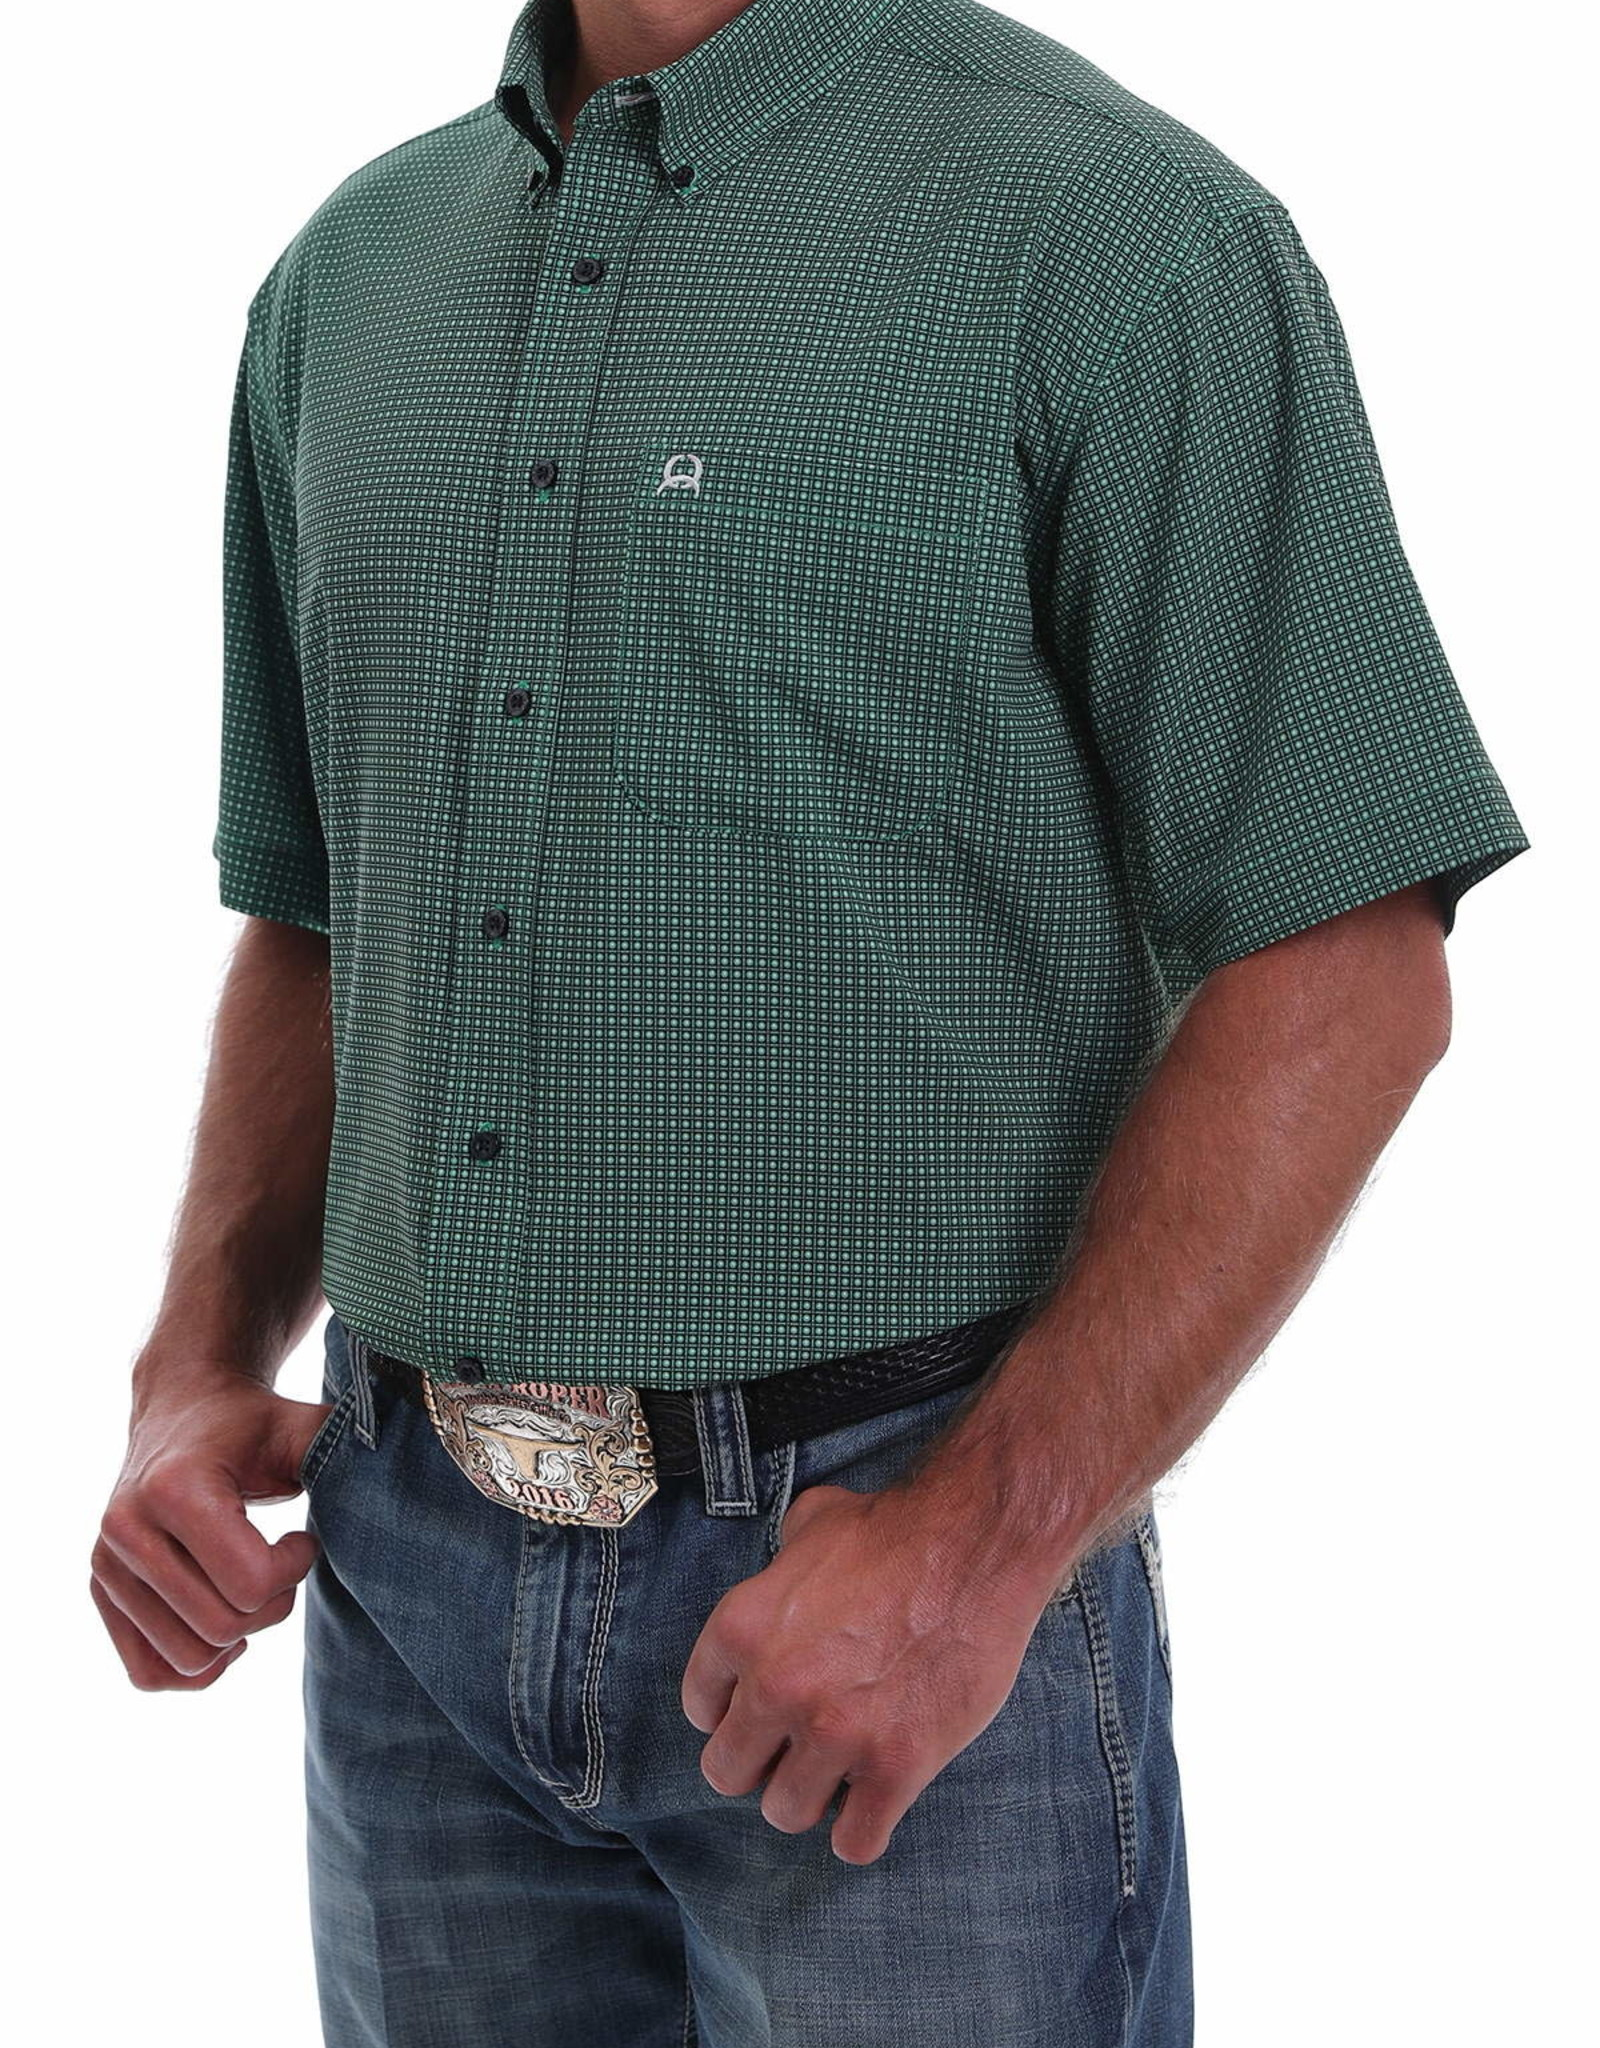 Cinch Mens Cinch Arena Flex Green & Navy Short Sleeve Shirt